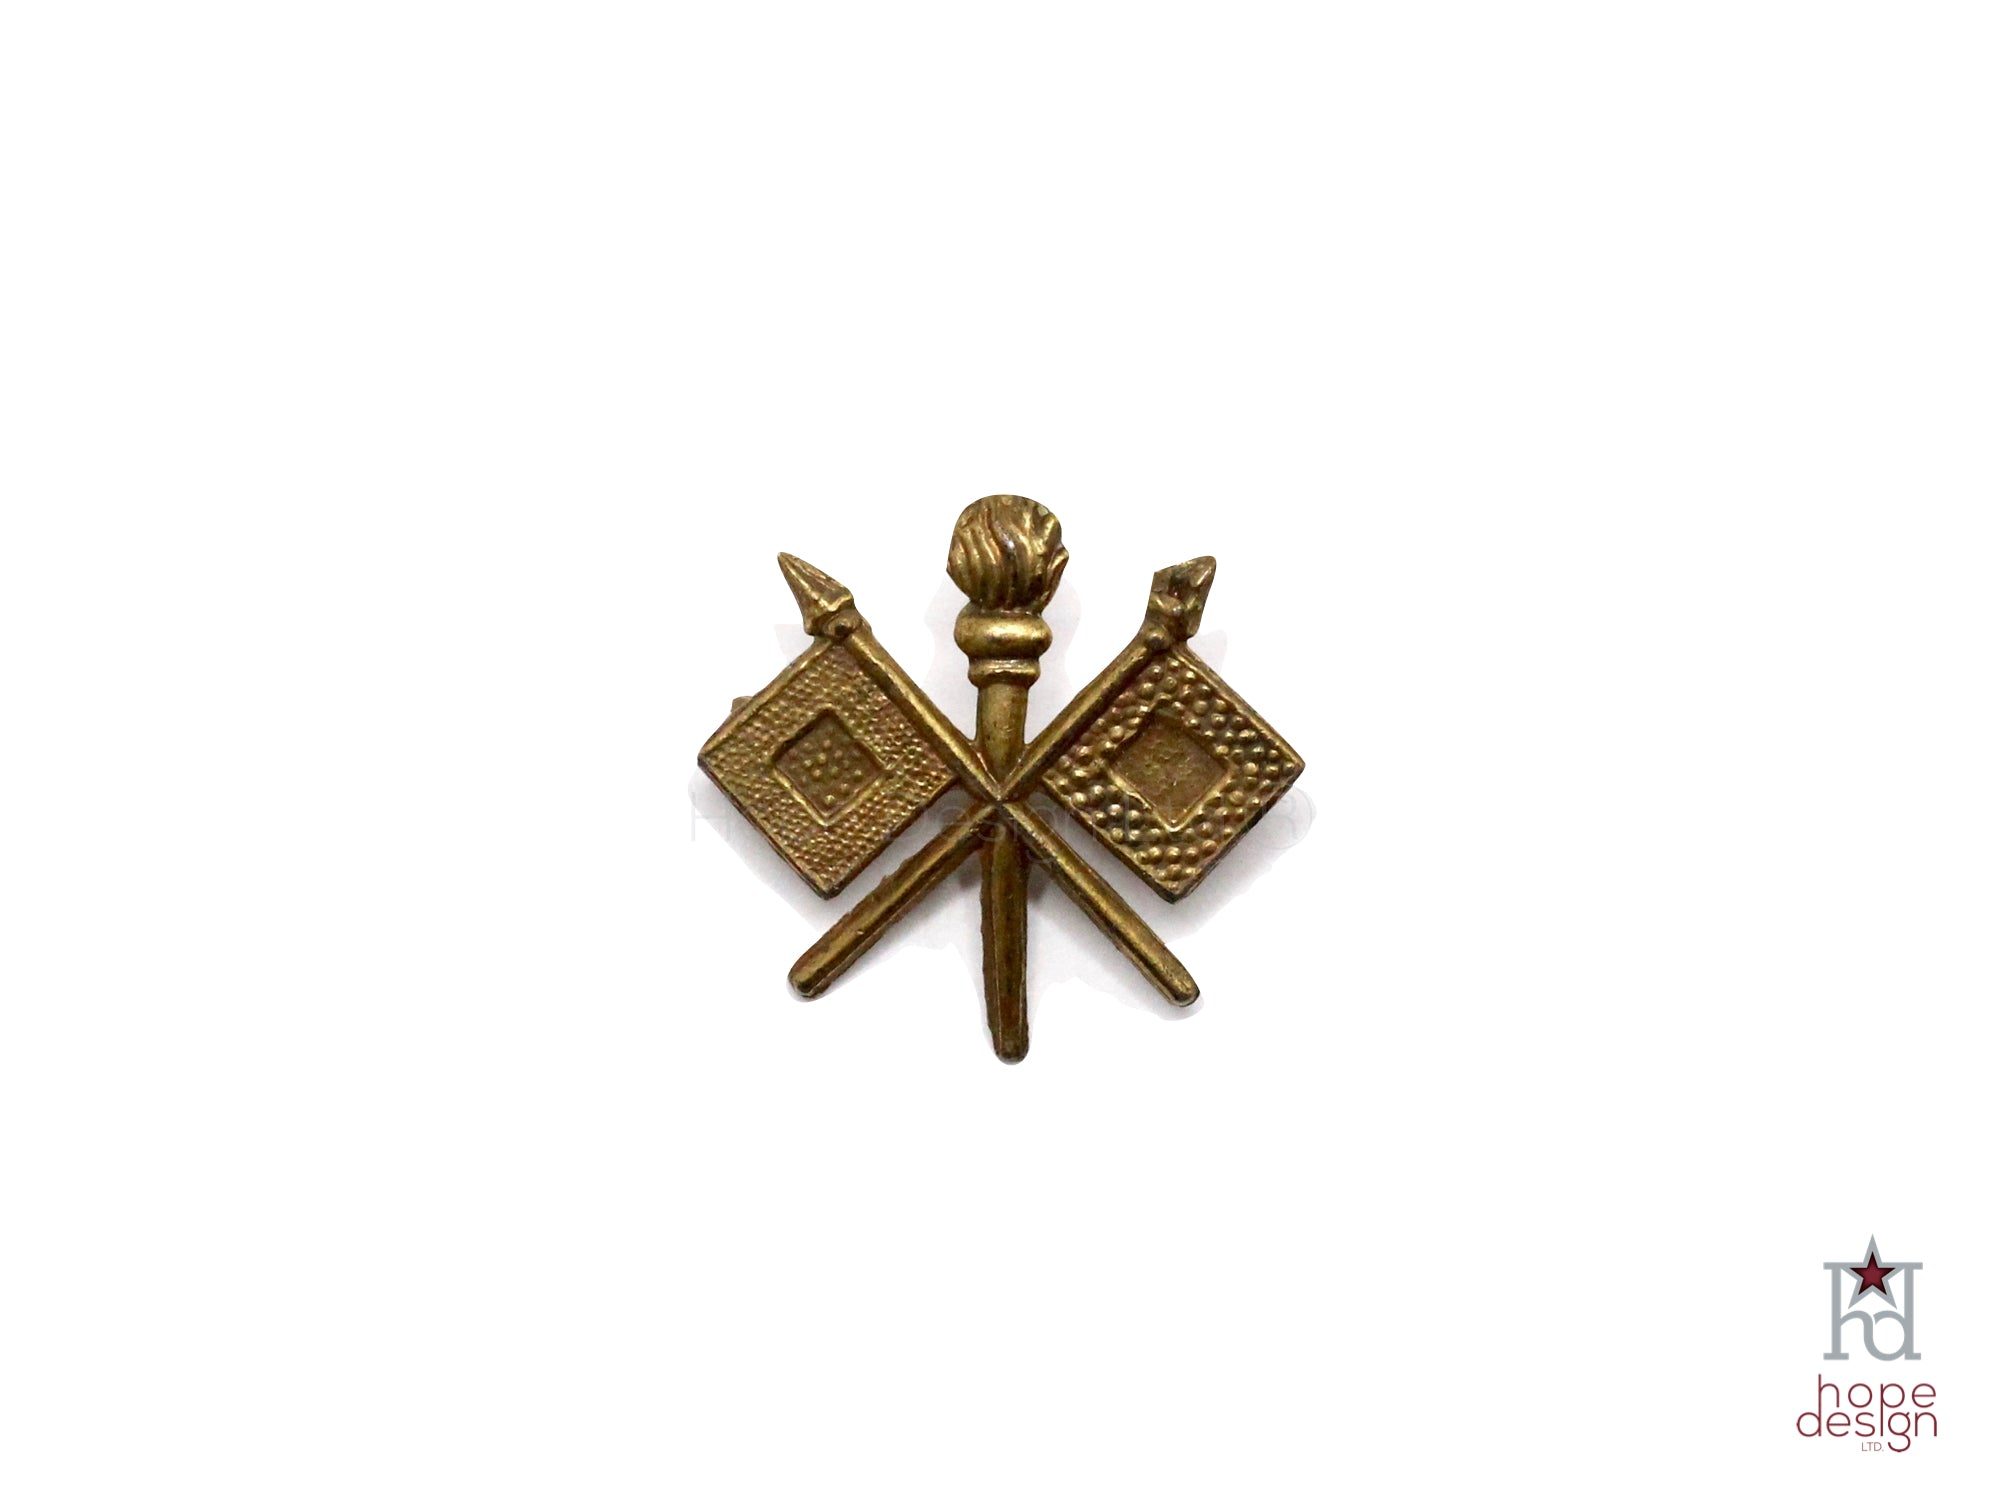 WWII-era Vintage Sweetheart Pin | Army Signal Corps VB76